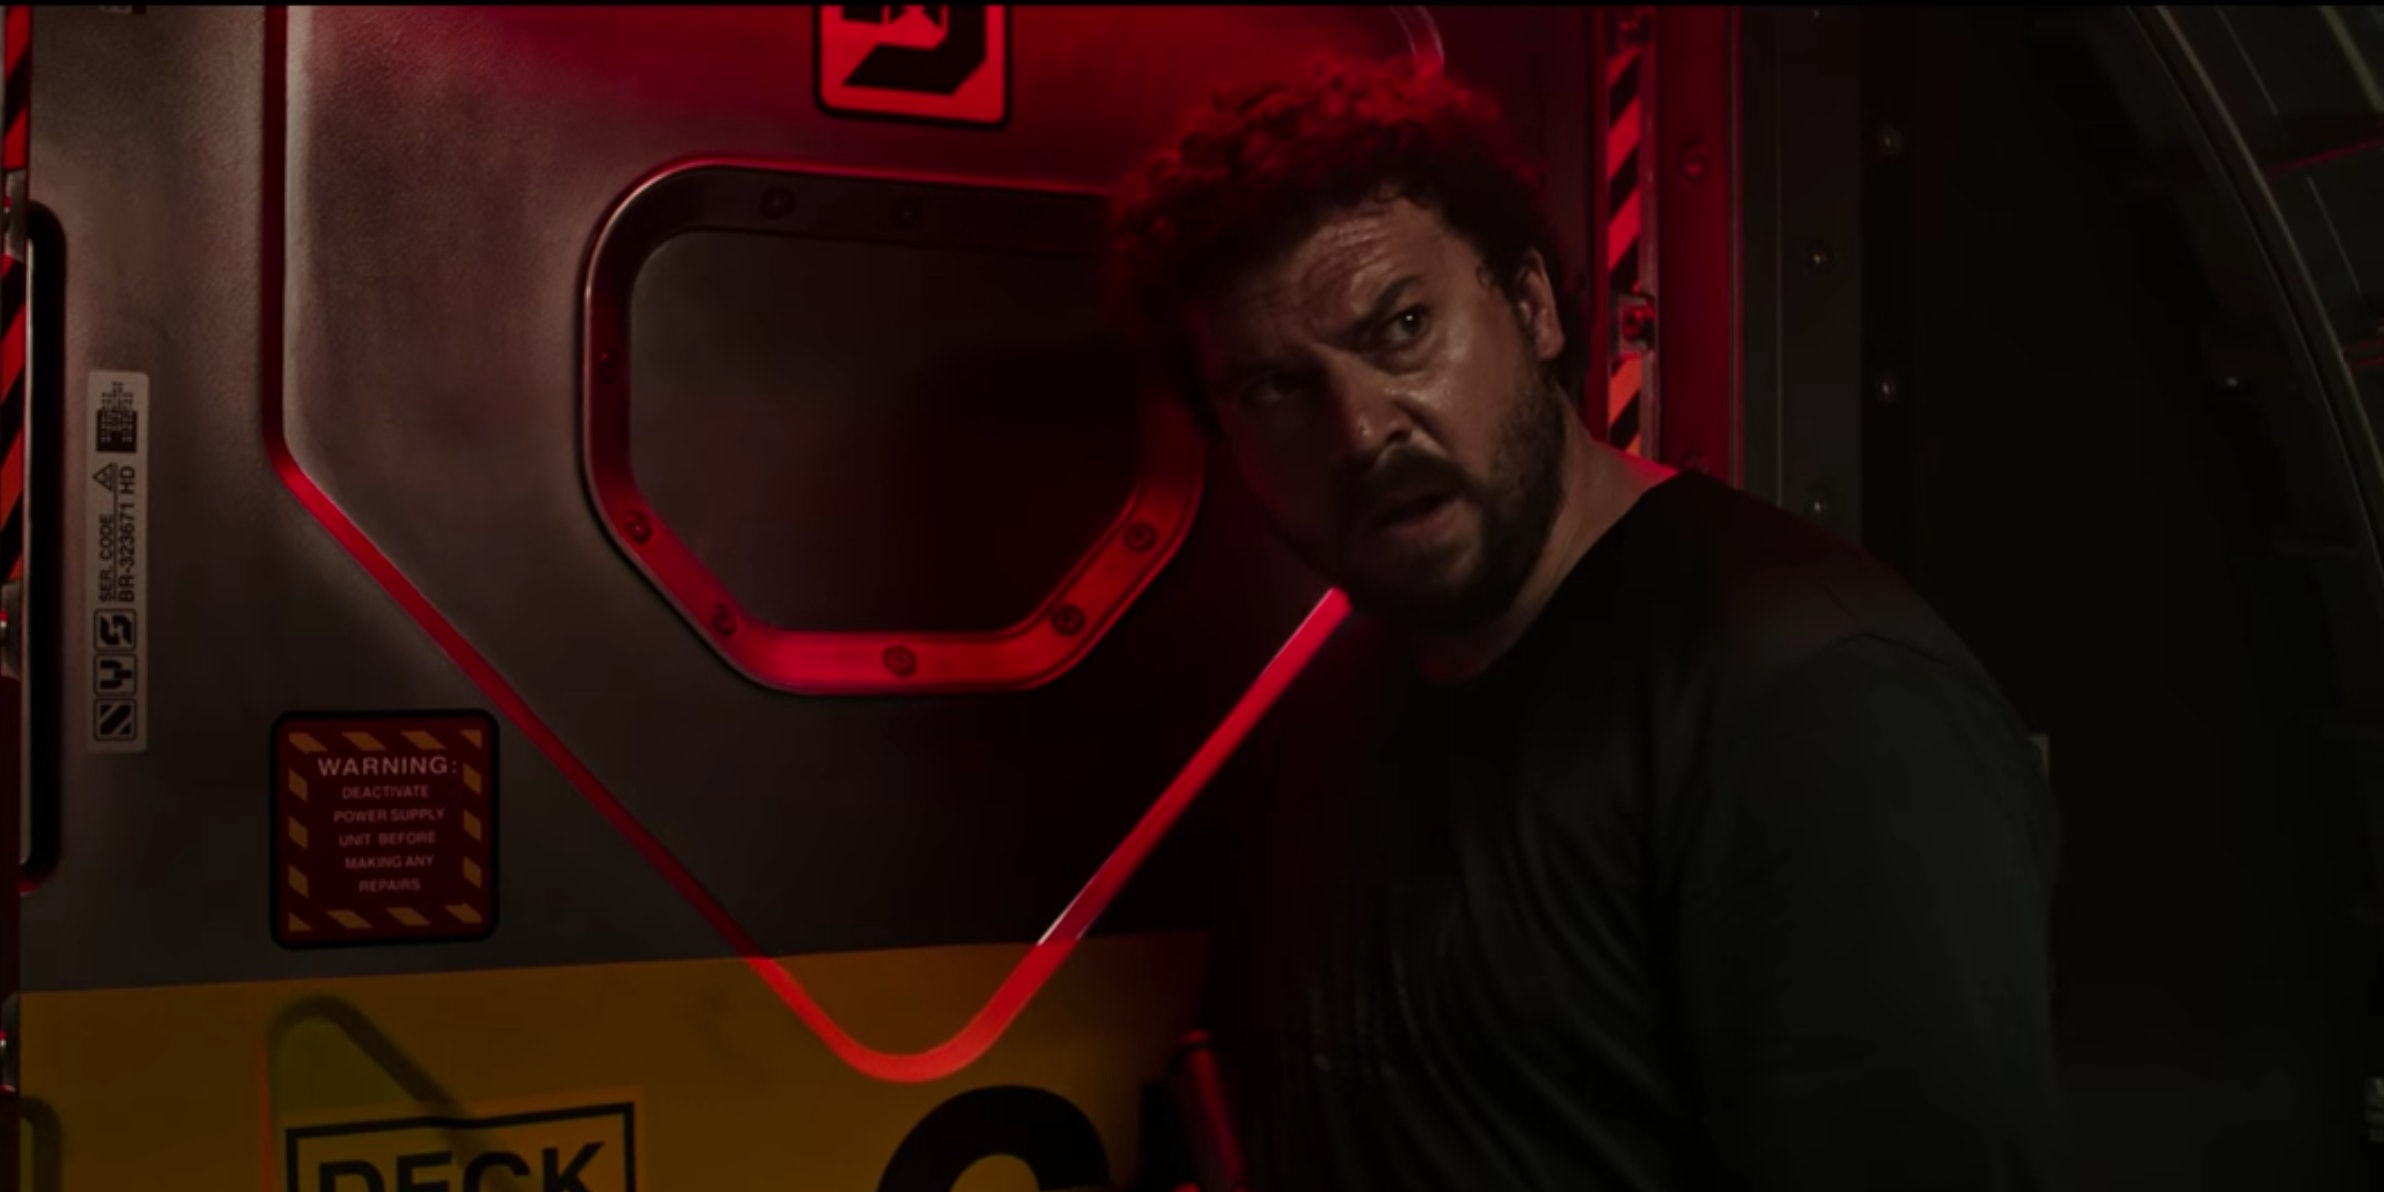 Danny McBride says his parents are proud of him for finally starring in a real movie.